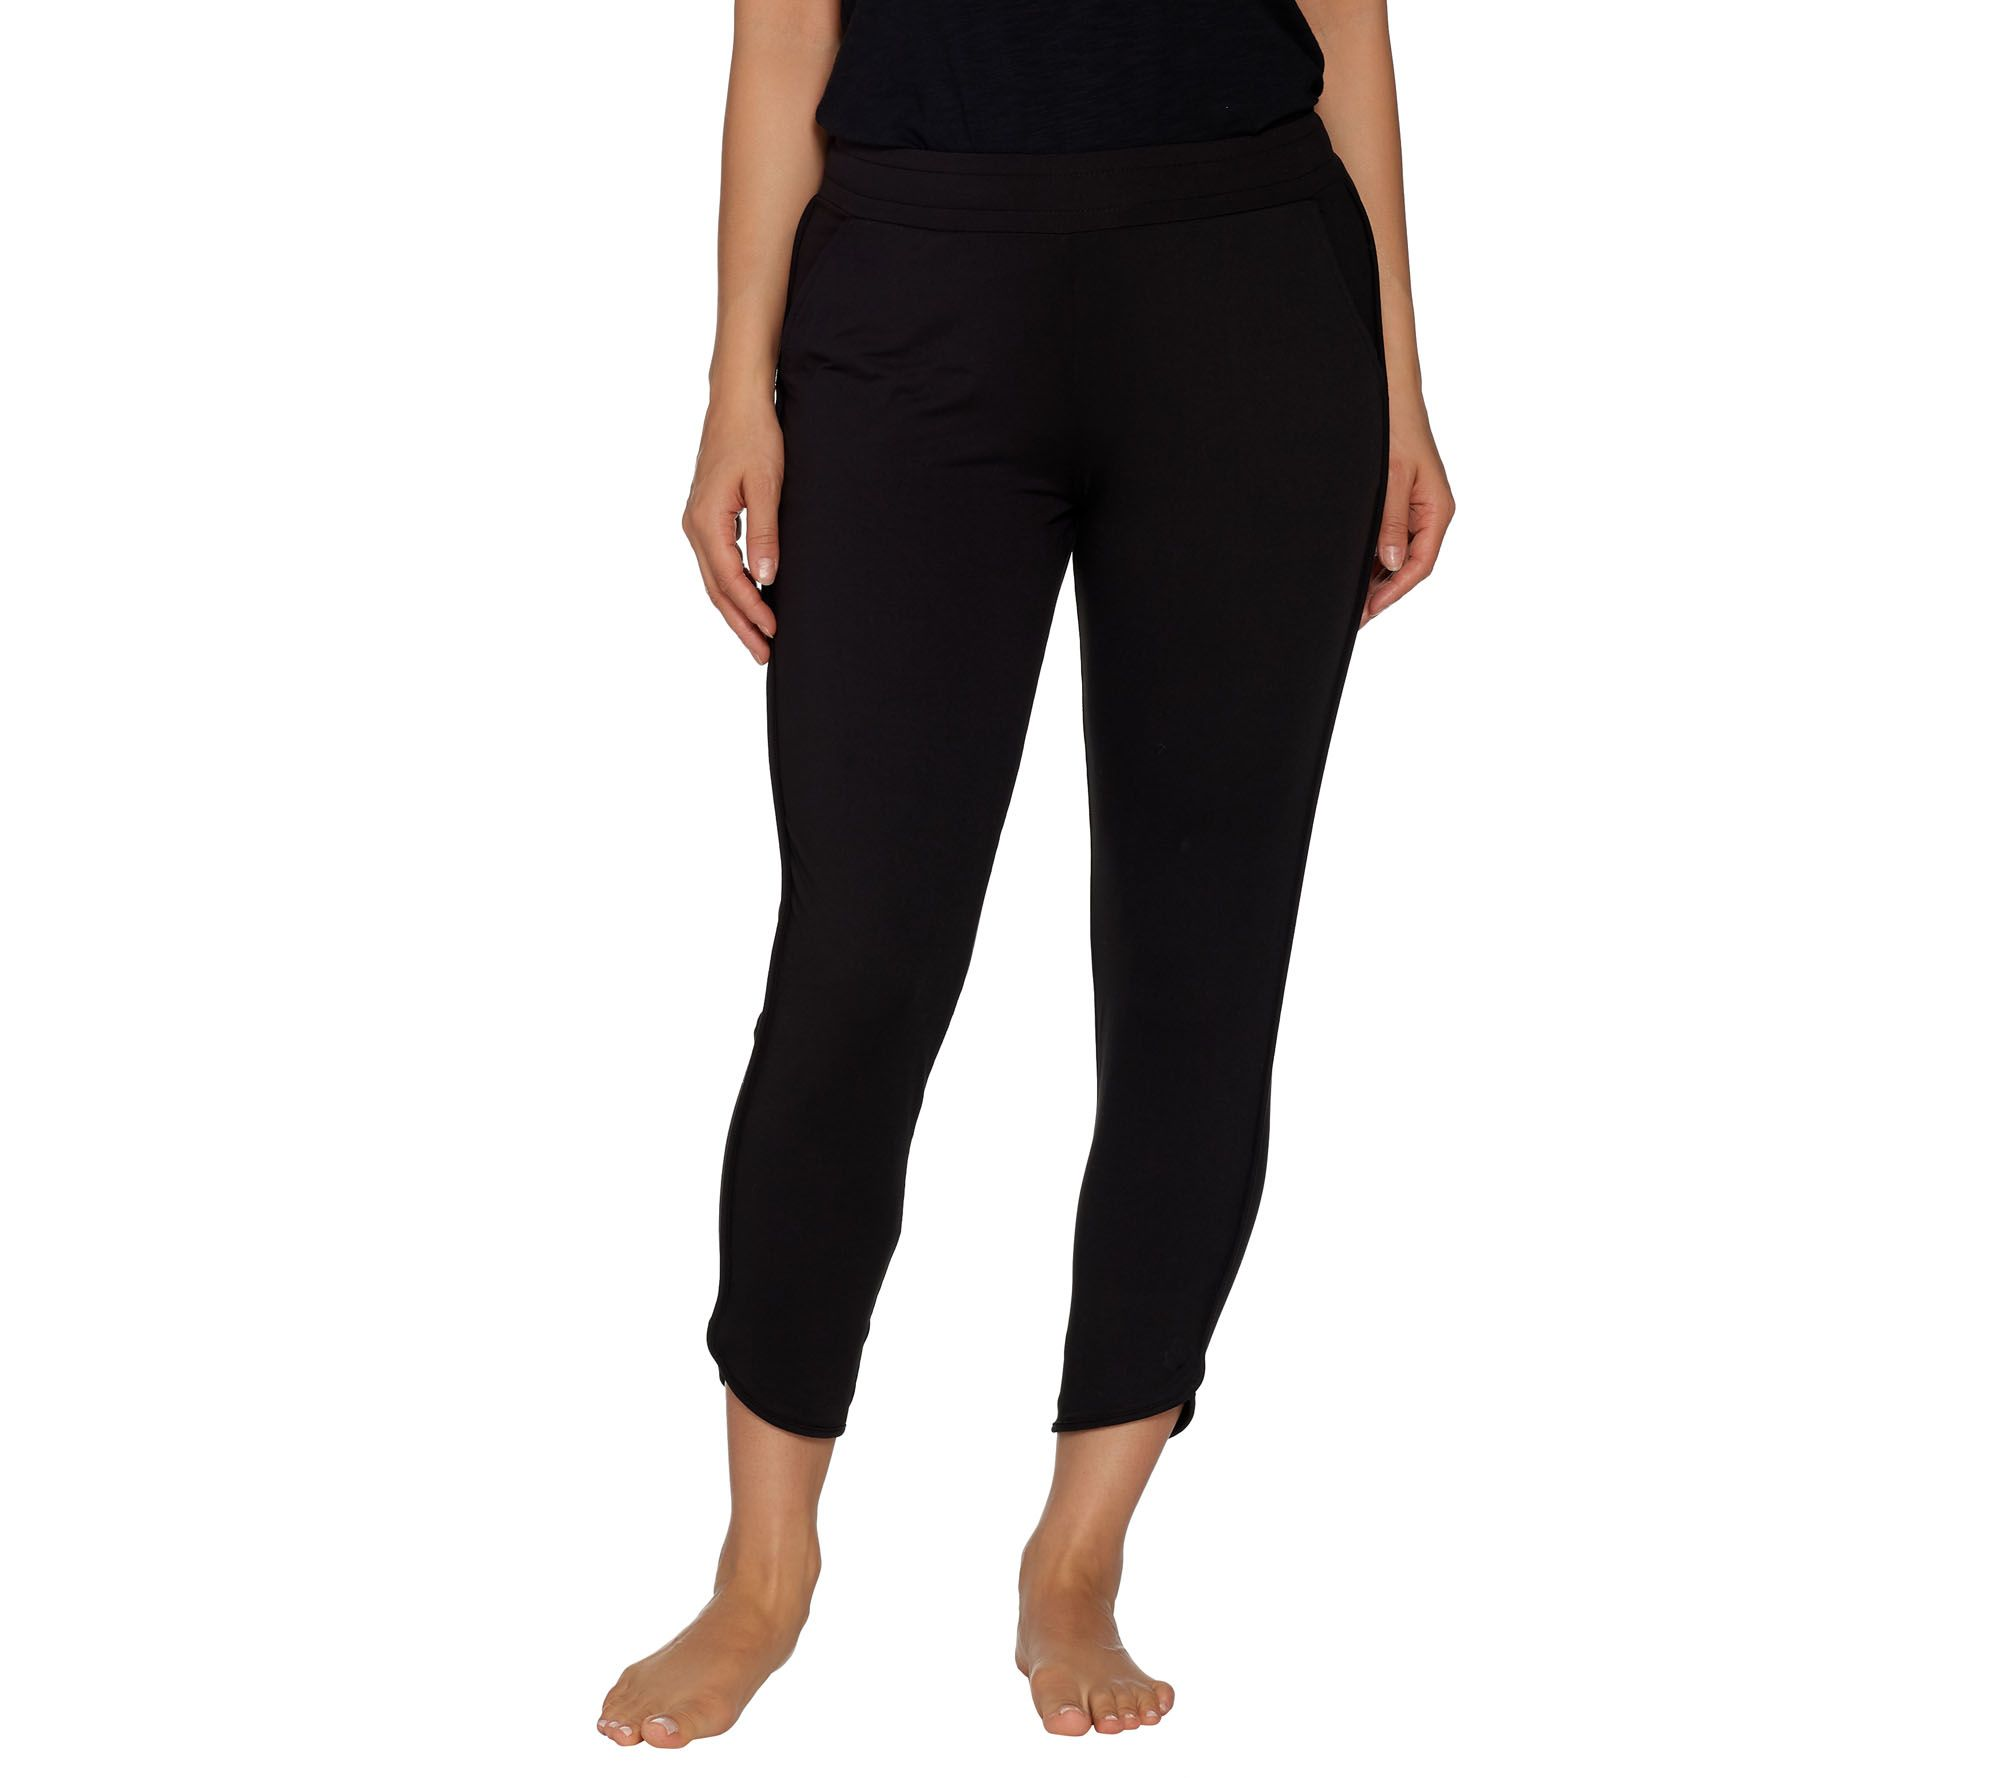 Cuddl Duds Flexwear Ankle Pants Navy L NEW A302818